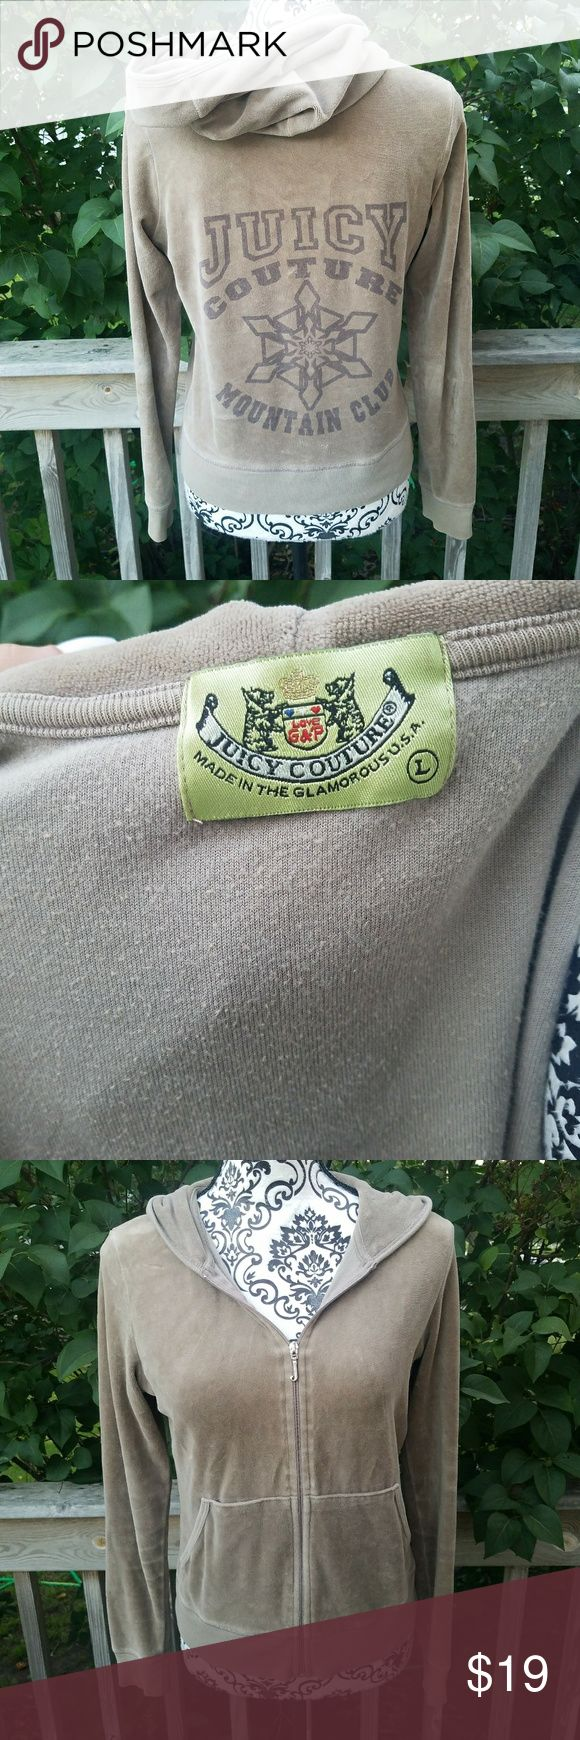 """Juicy Couture Mountain Club Velour Brown Jacket Gray/brown color *In EUC, no fading nor stains *size large, runs small in length size- will fit a M *Velour material  *""""J"""" zipper Juicy Couture Jackets & Coats"""